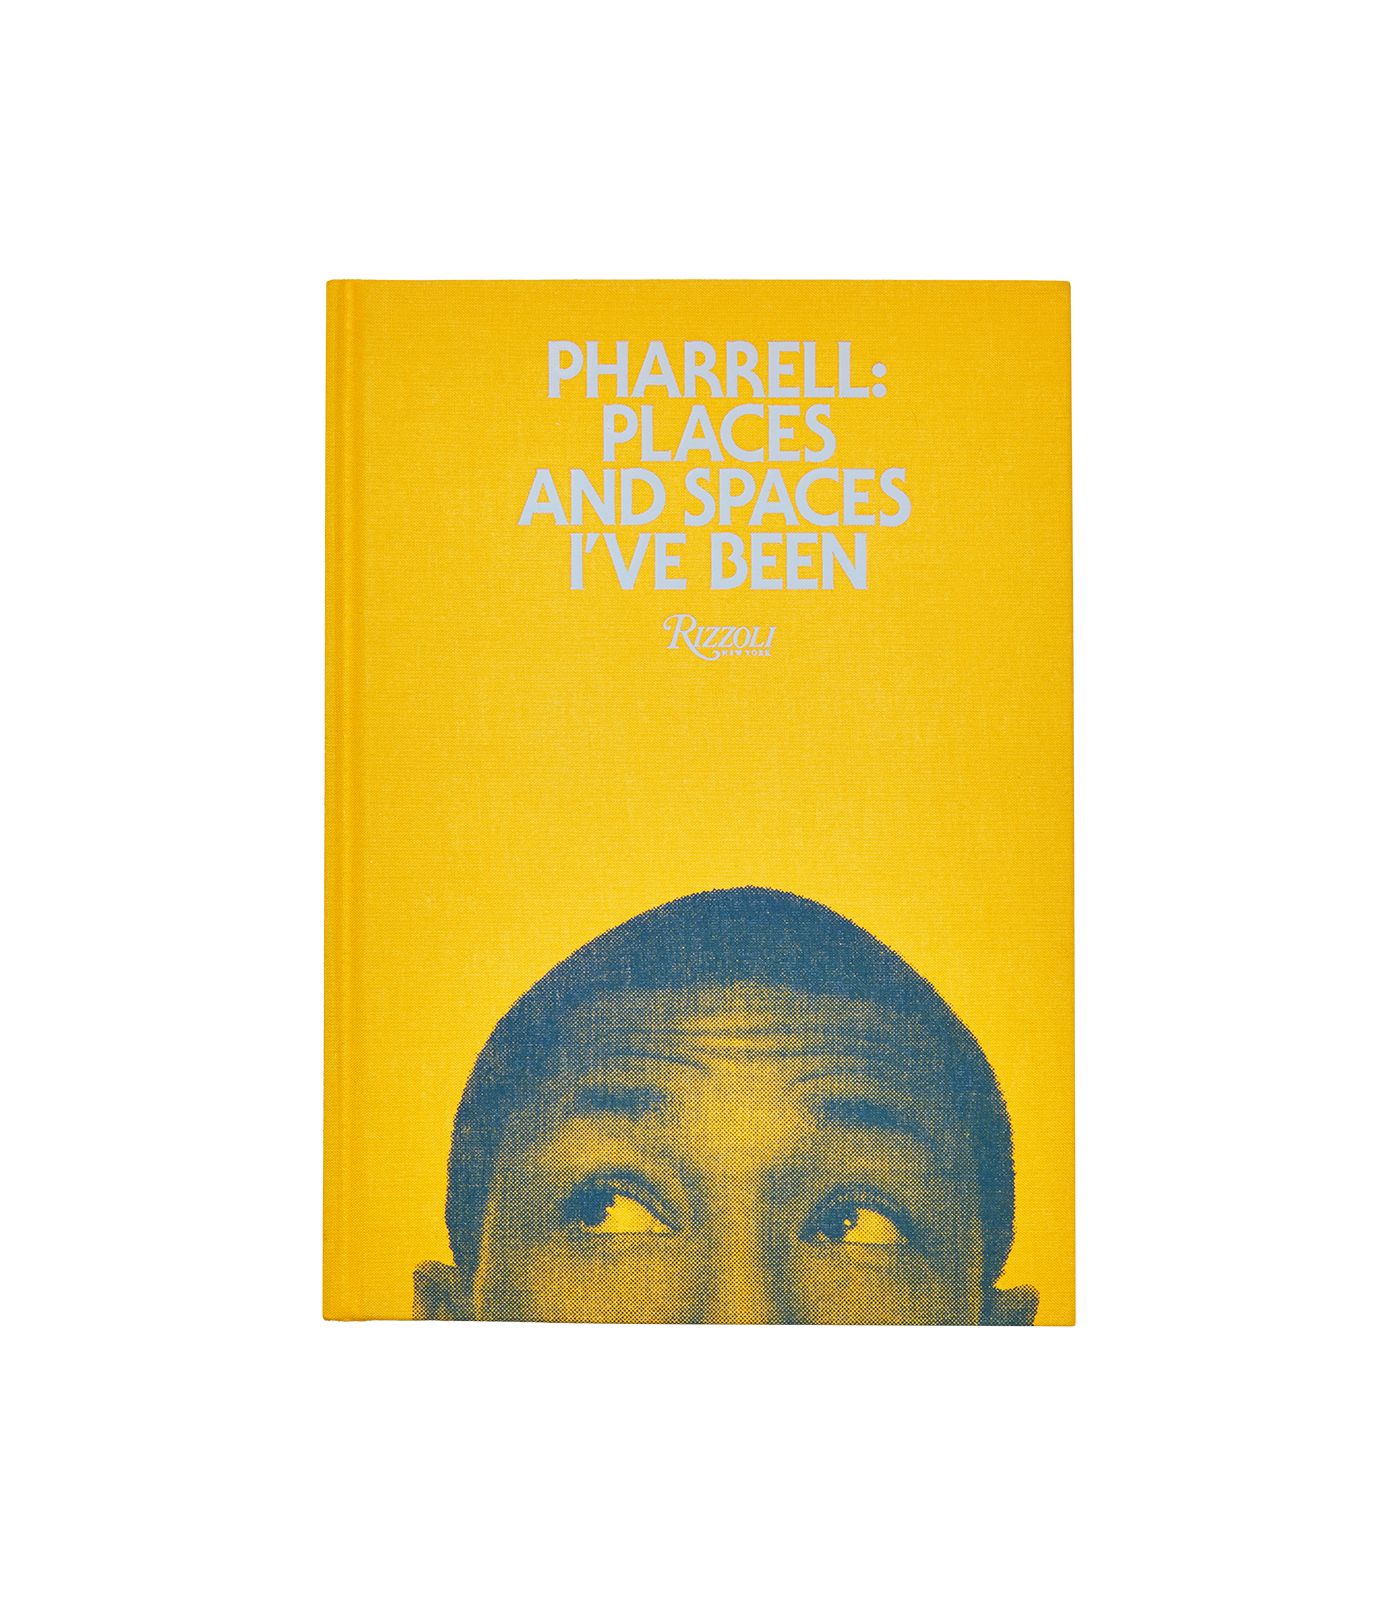 Pharrell: Places and Spaces I've Been Book - Yellow